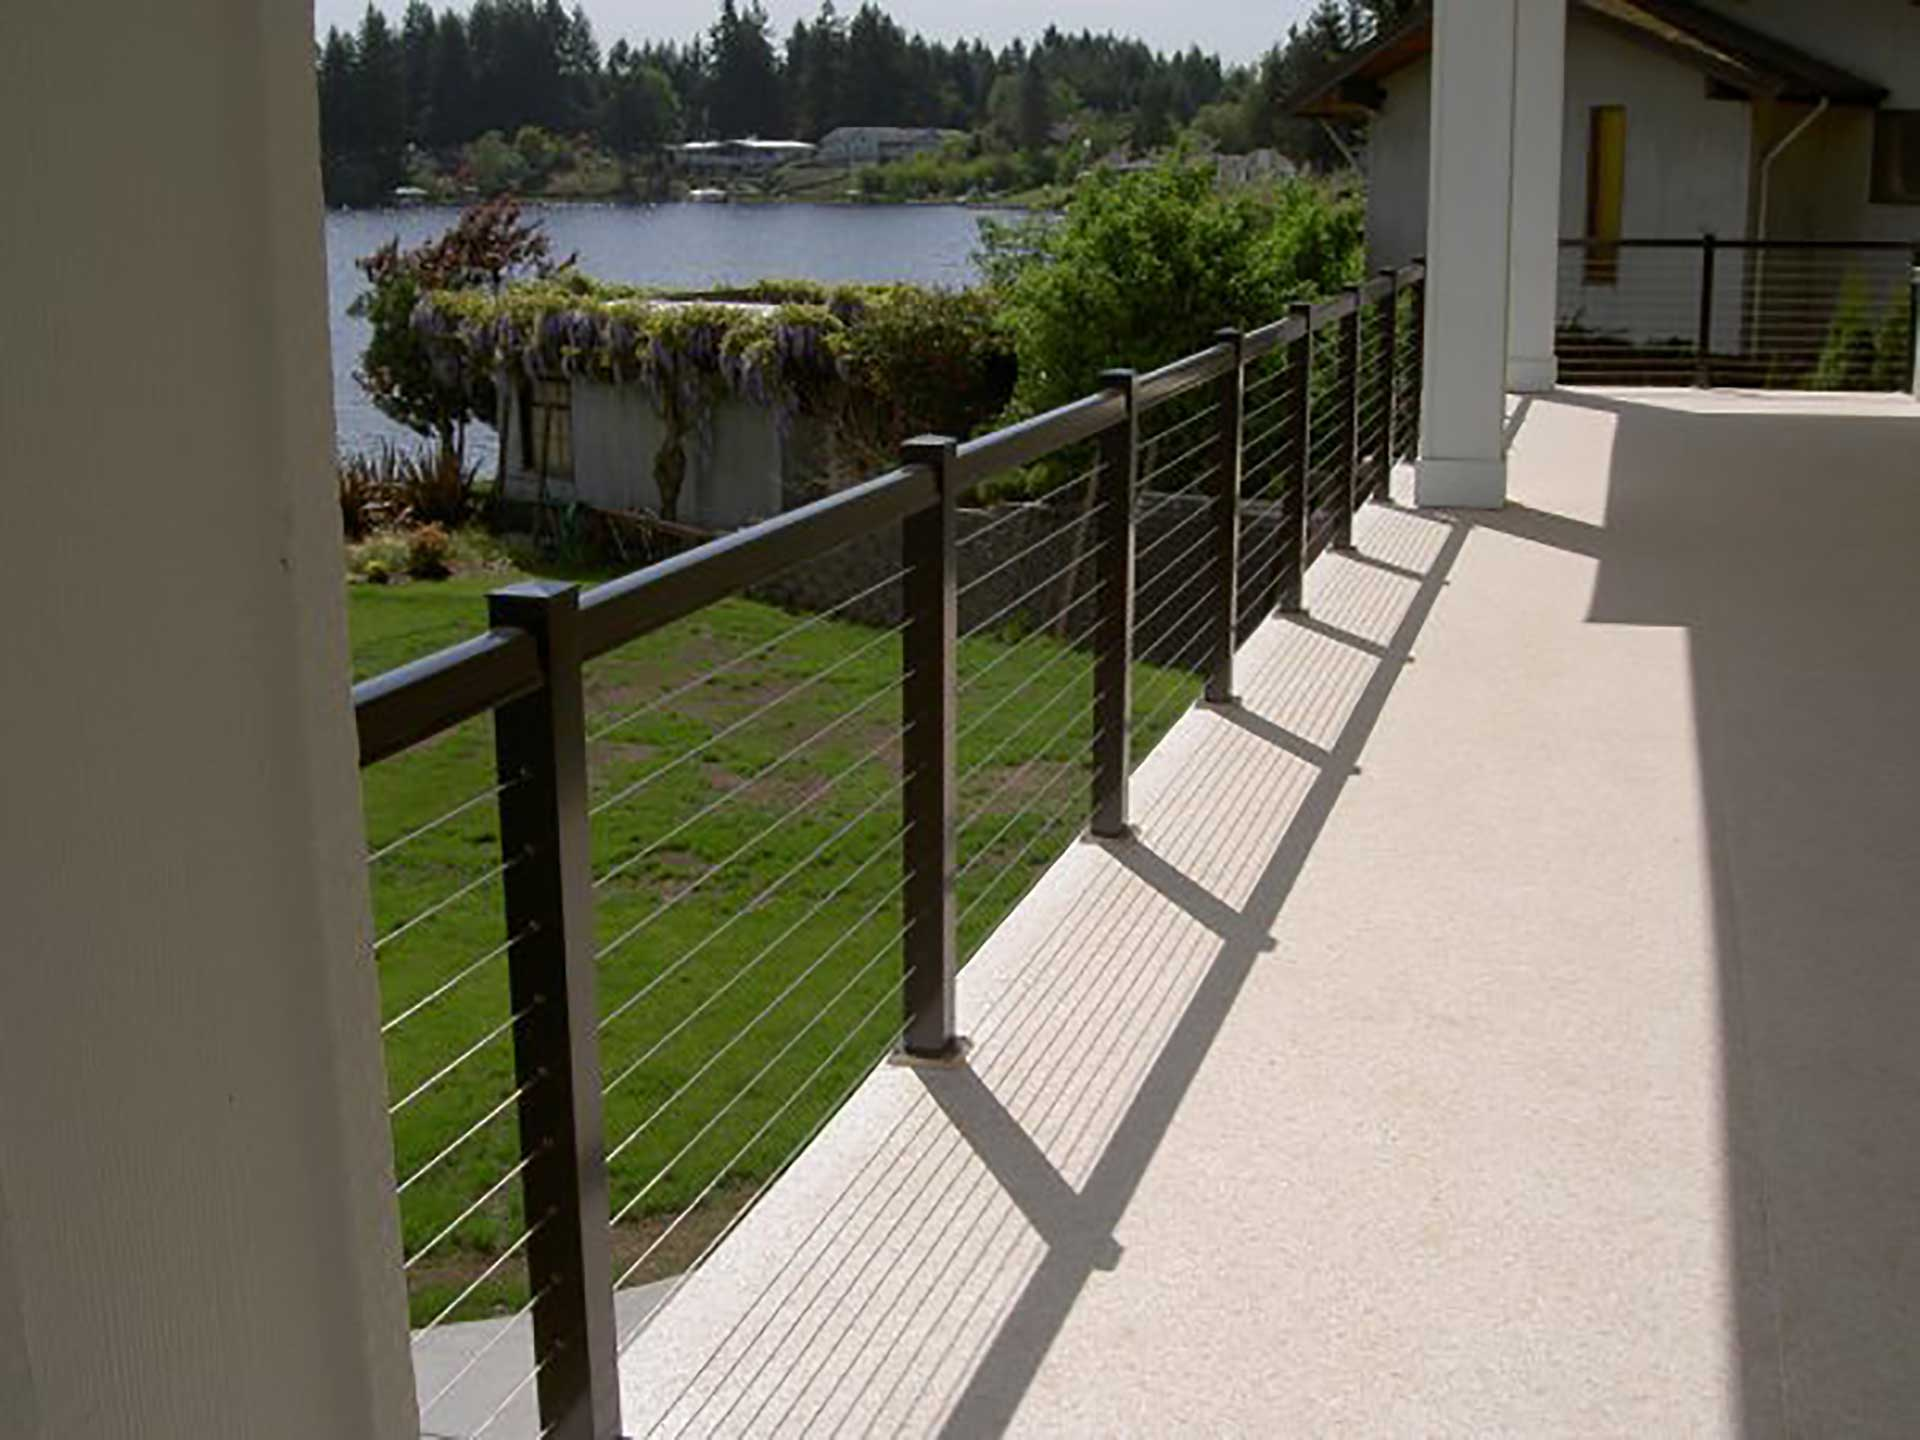 Durarail Cable Railing System with Aluminum Posts